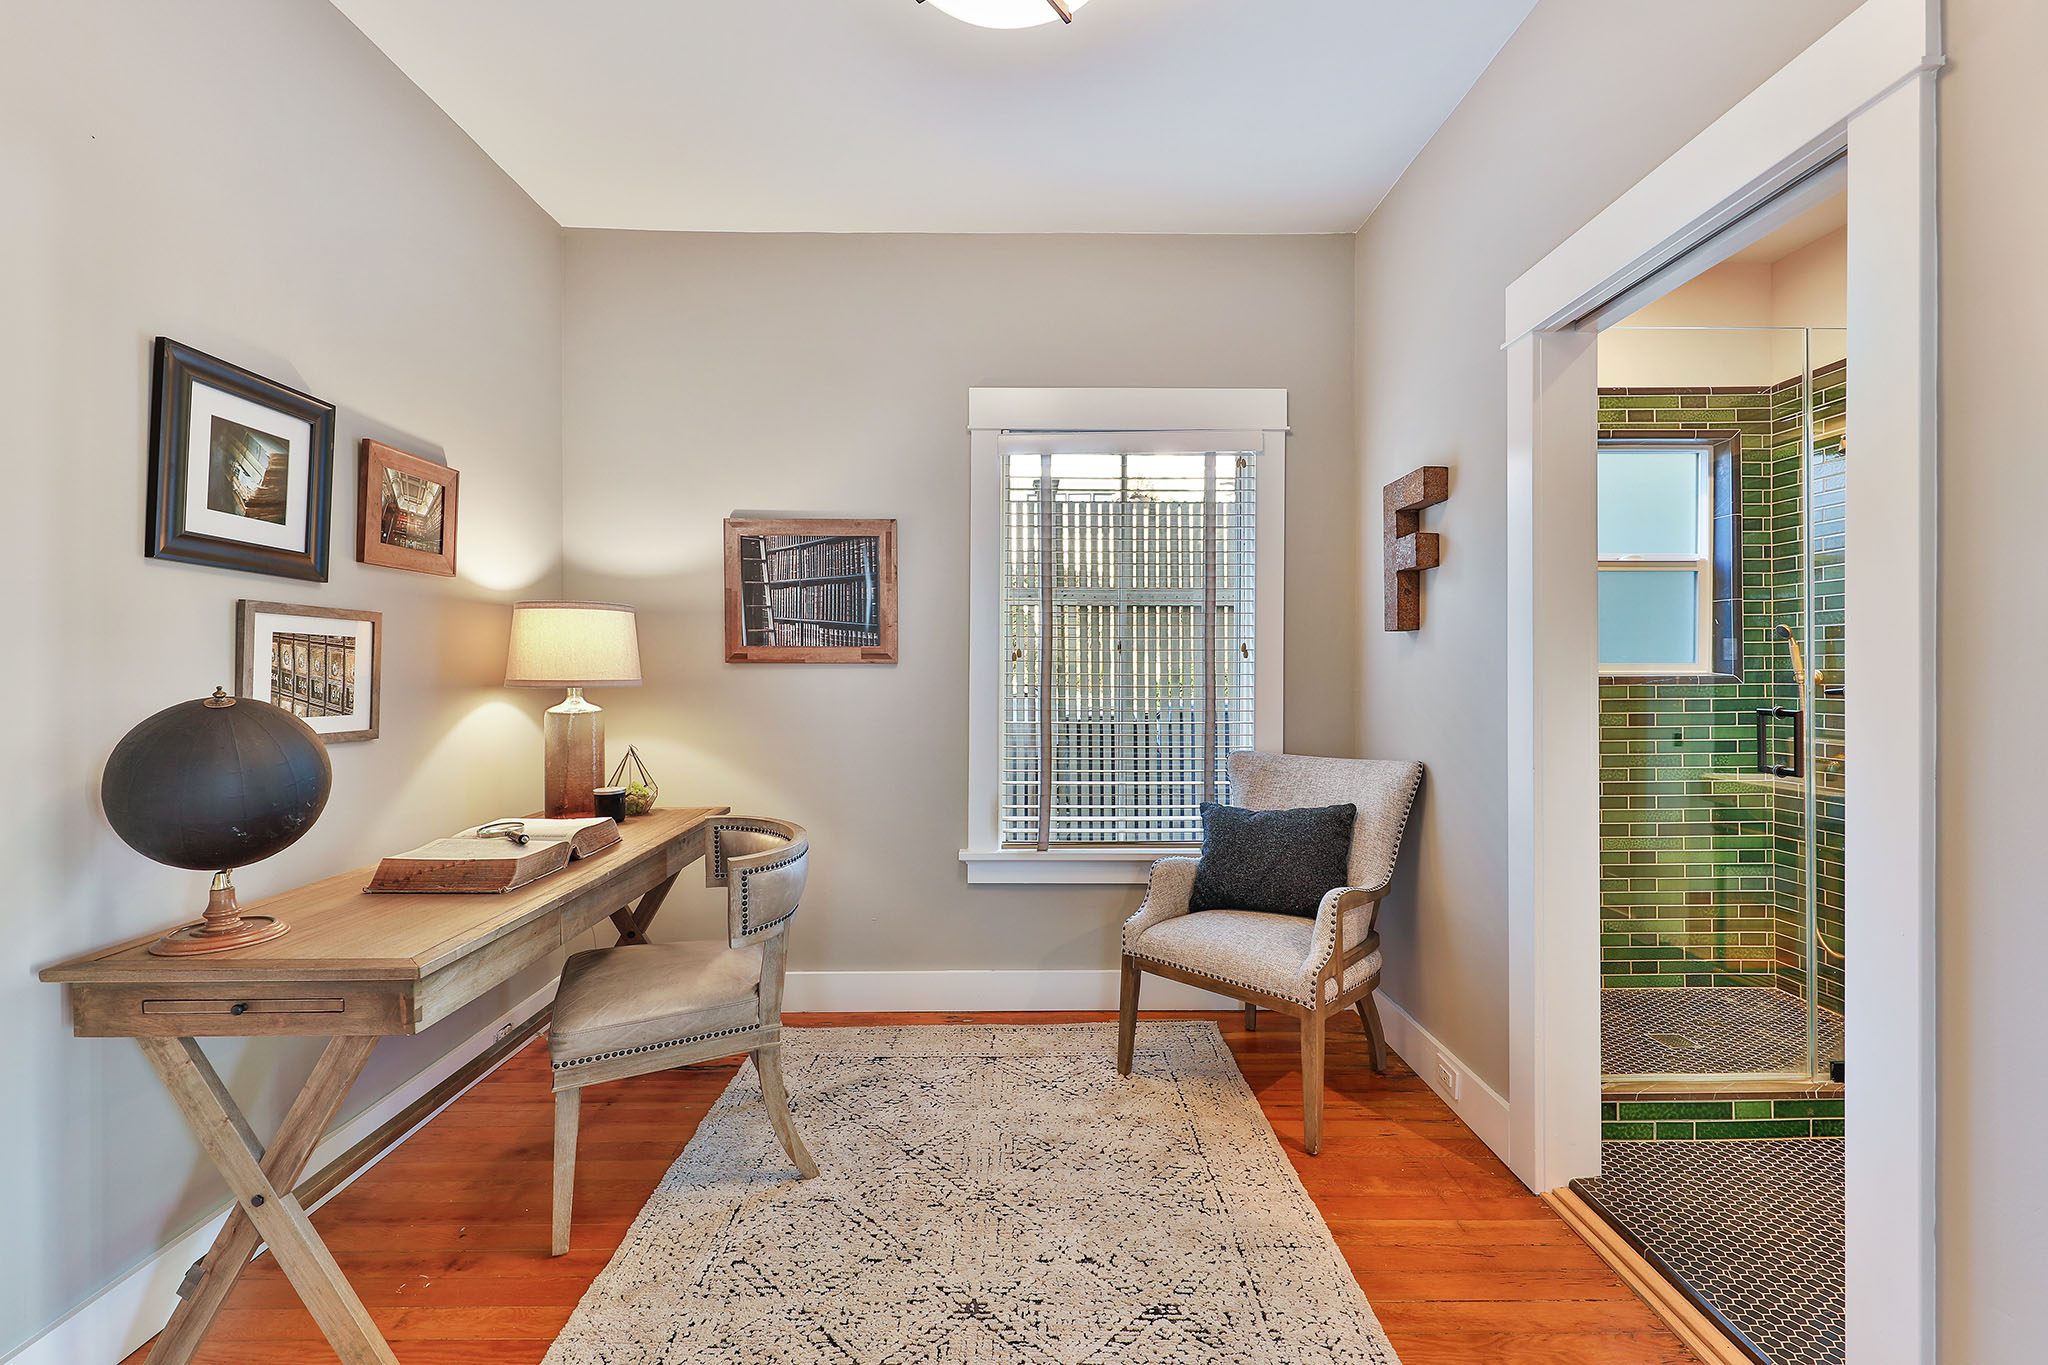 SF Real Estate - Hallway with chair and side table